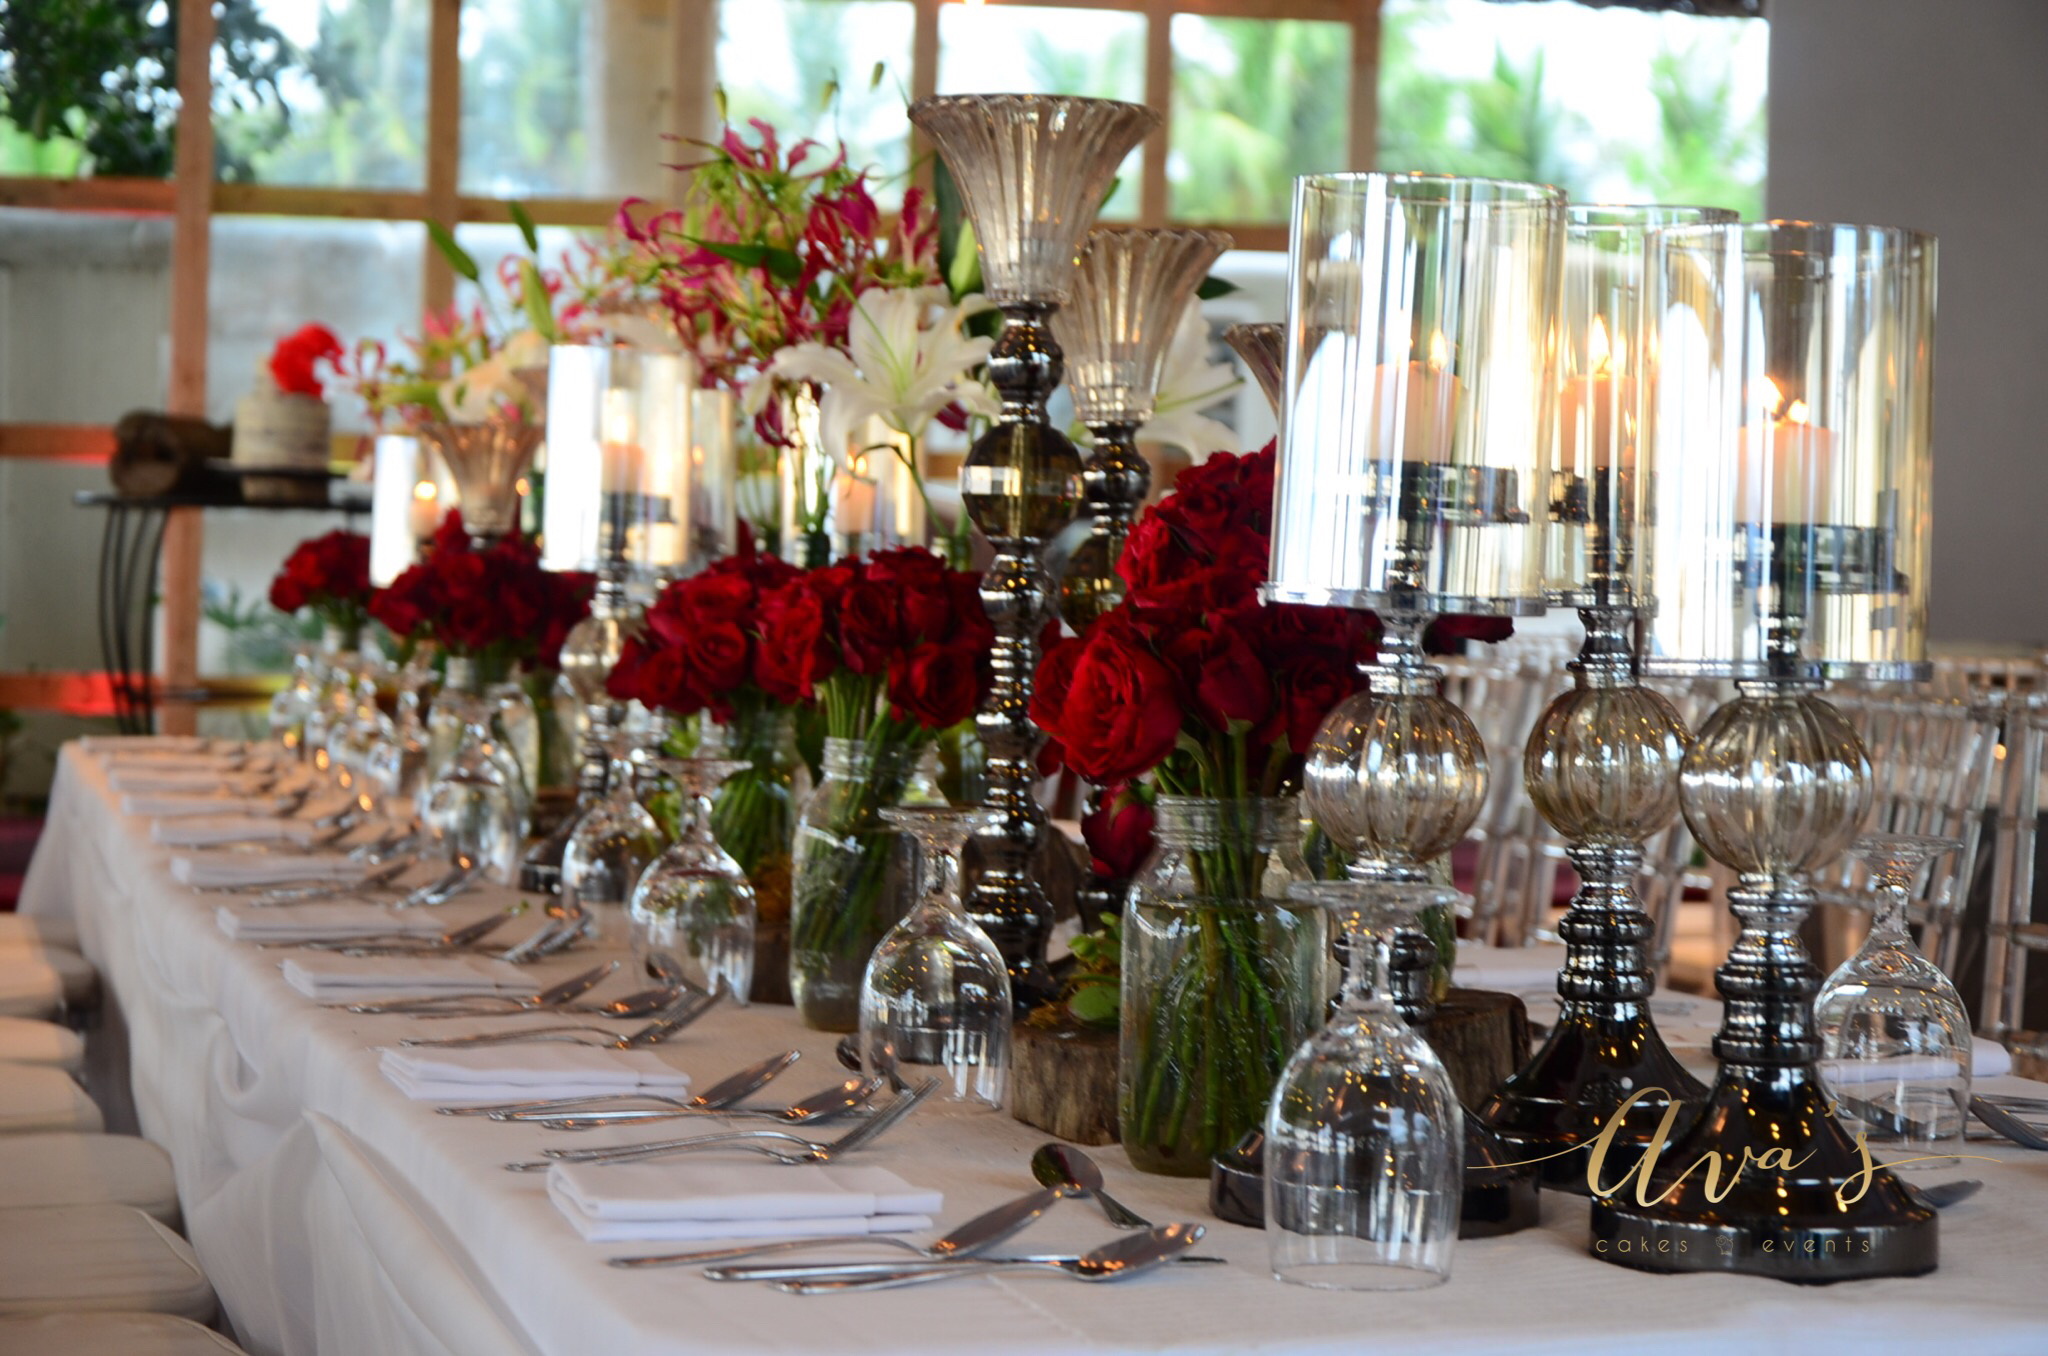 And the tablescapes for their entourage and